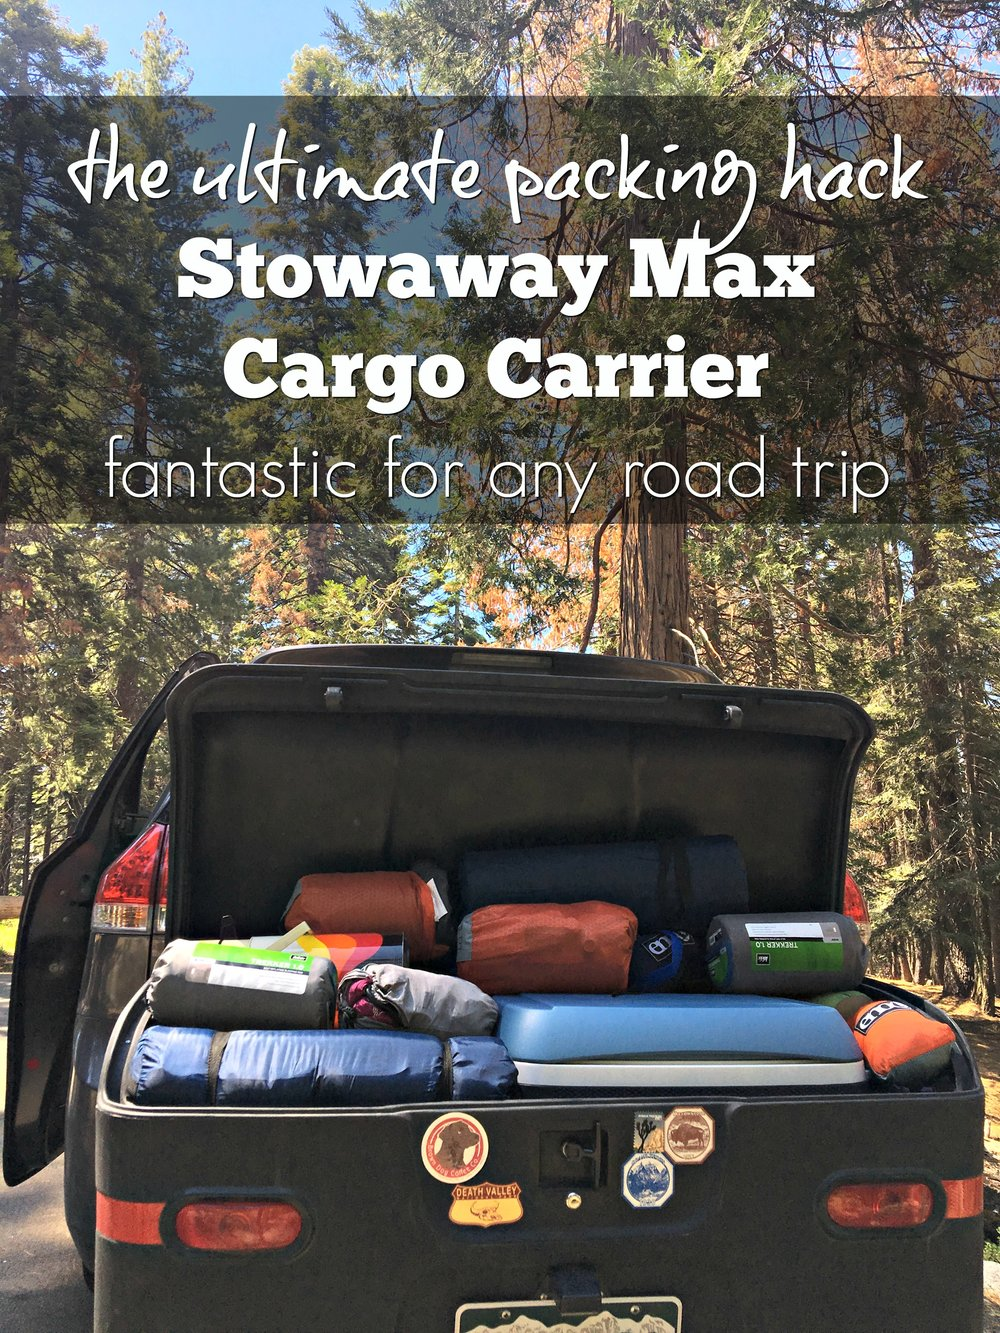 The Stowaway2 Max Cargo Carrier - the best solution for any big road trip!